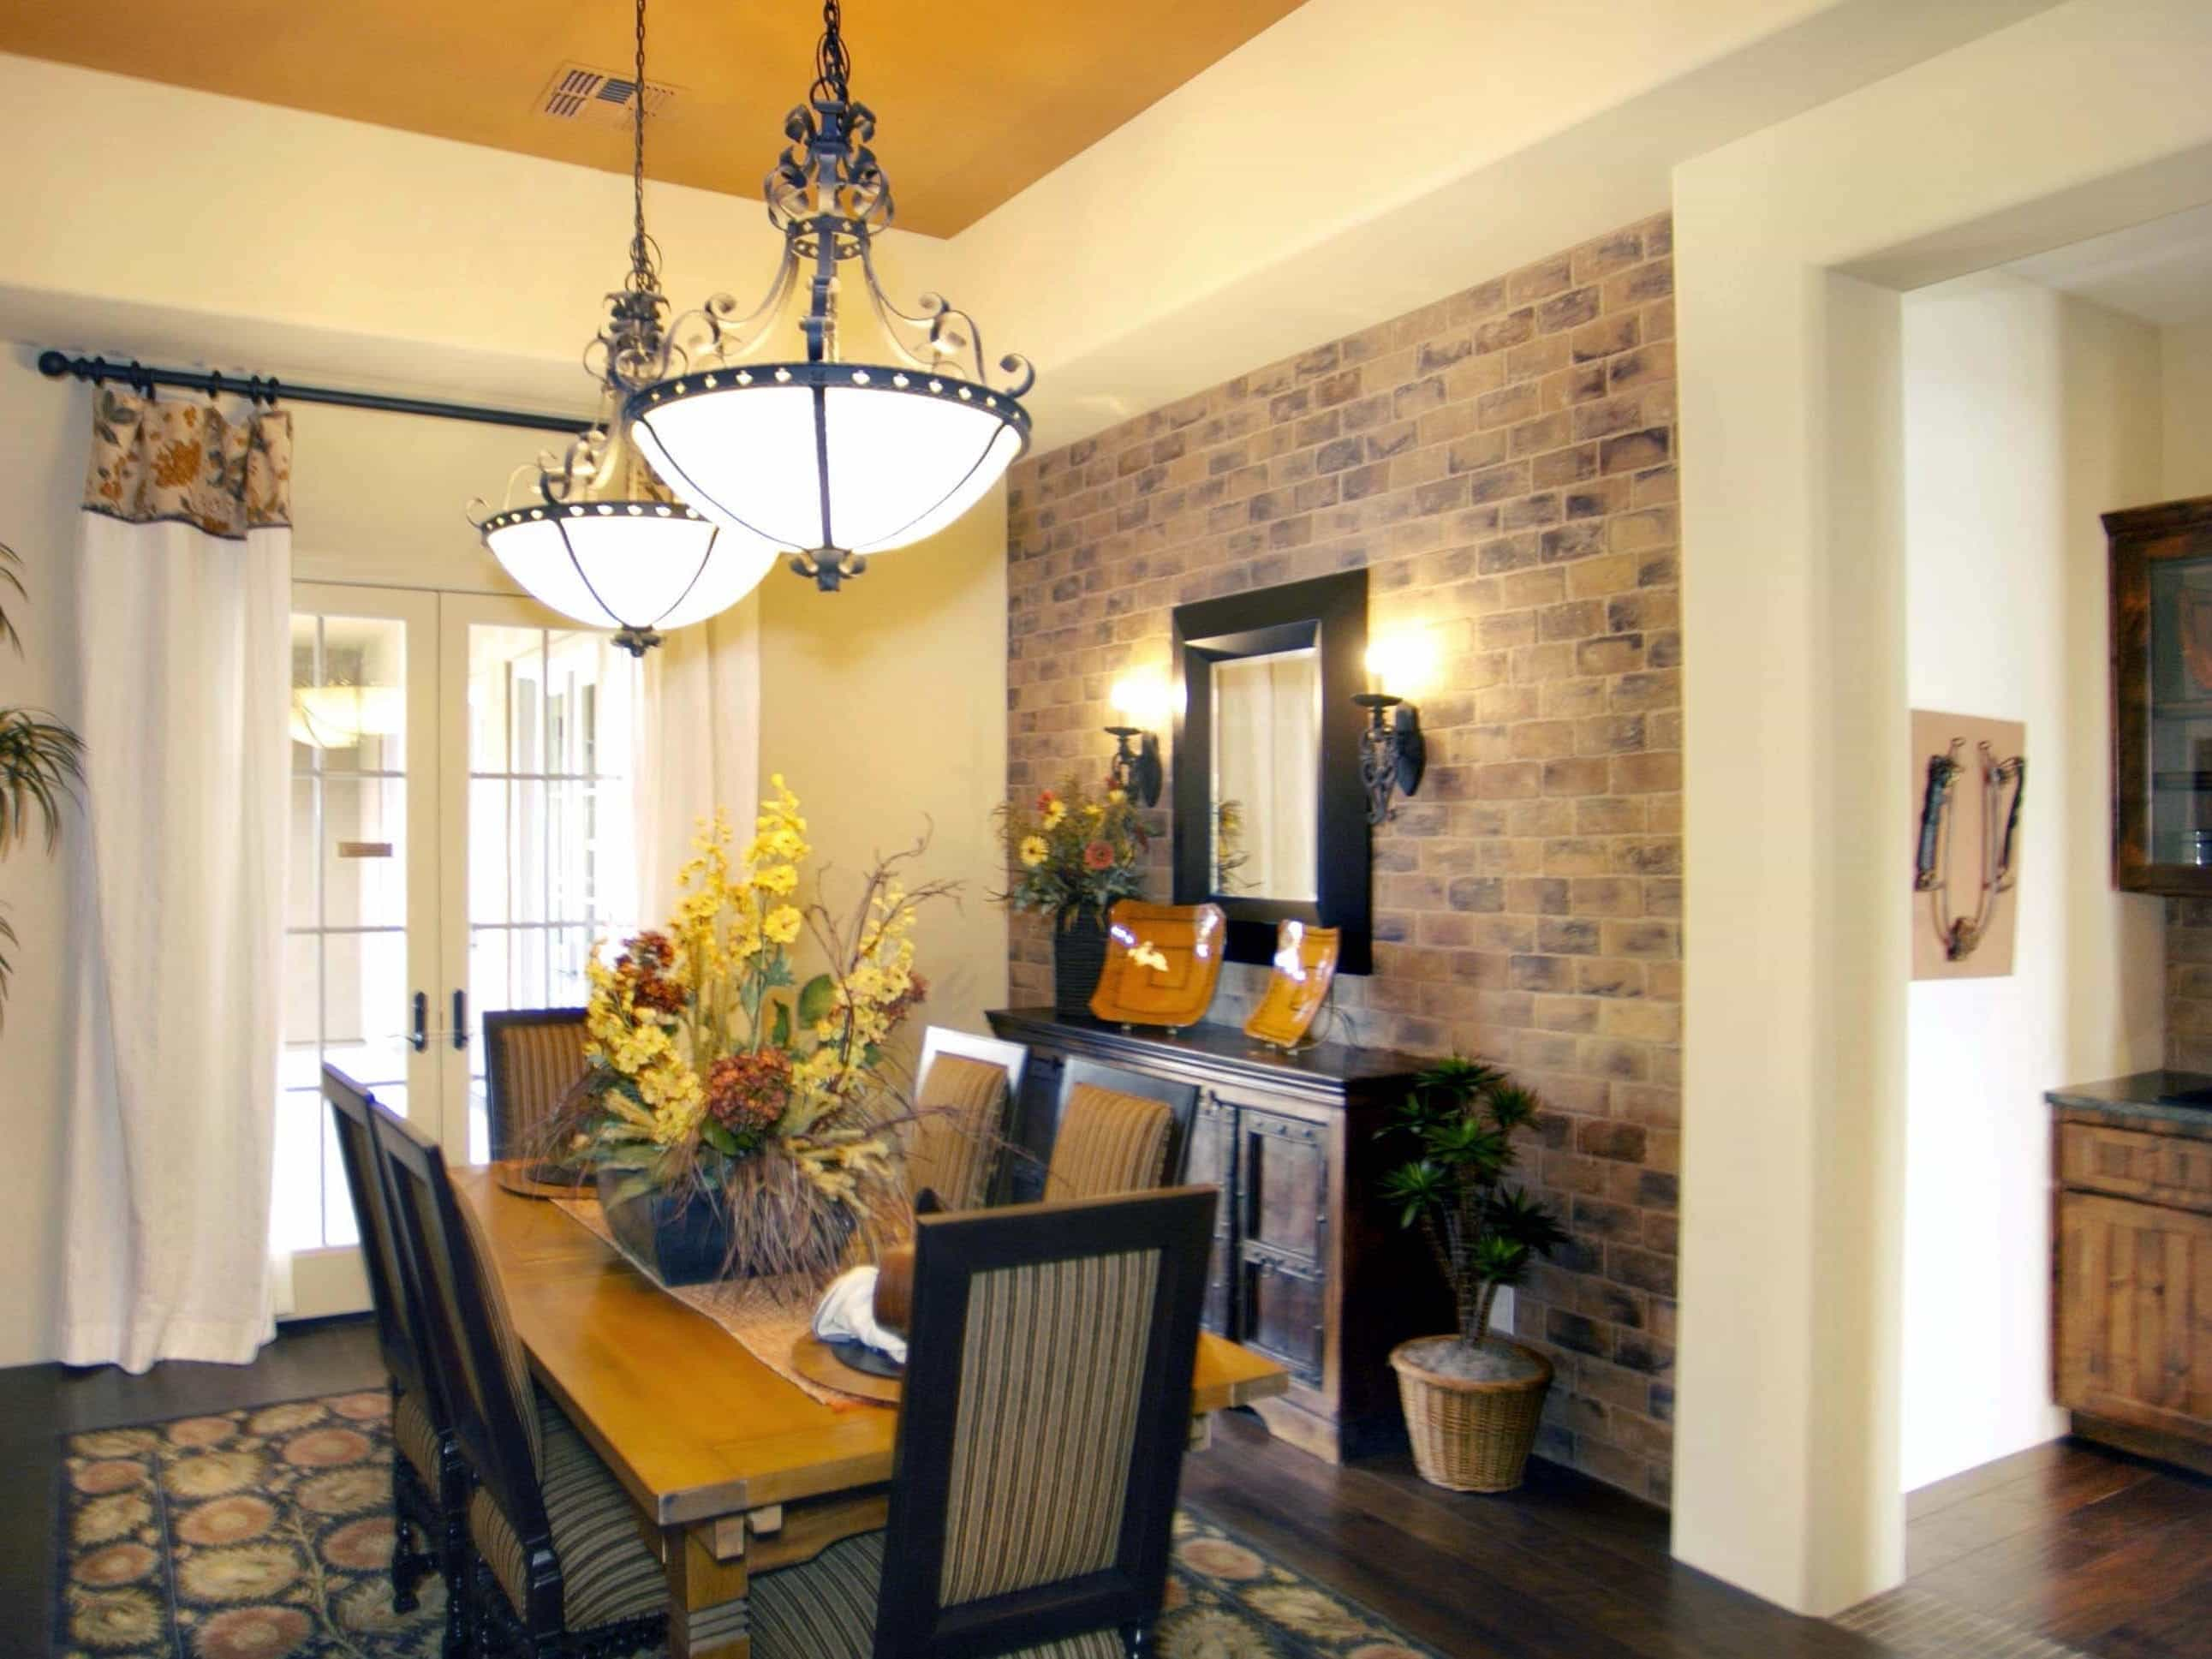 Mediterranean Style Dining Room With Painted Ceiling (Image 16 of 30)